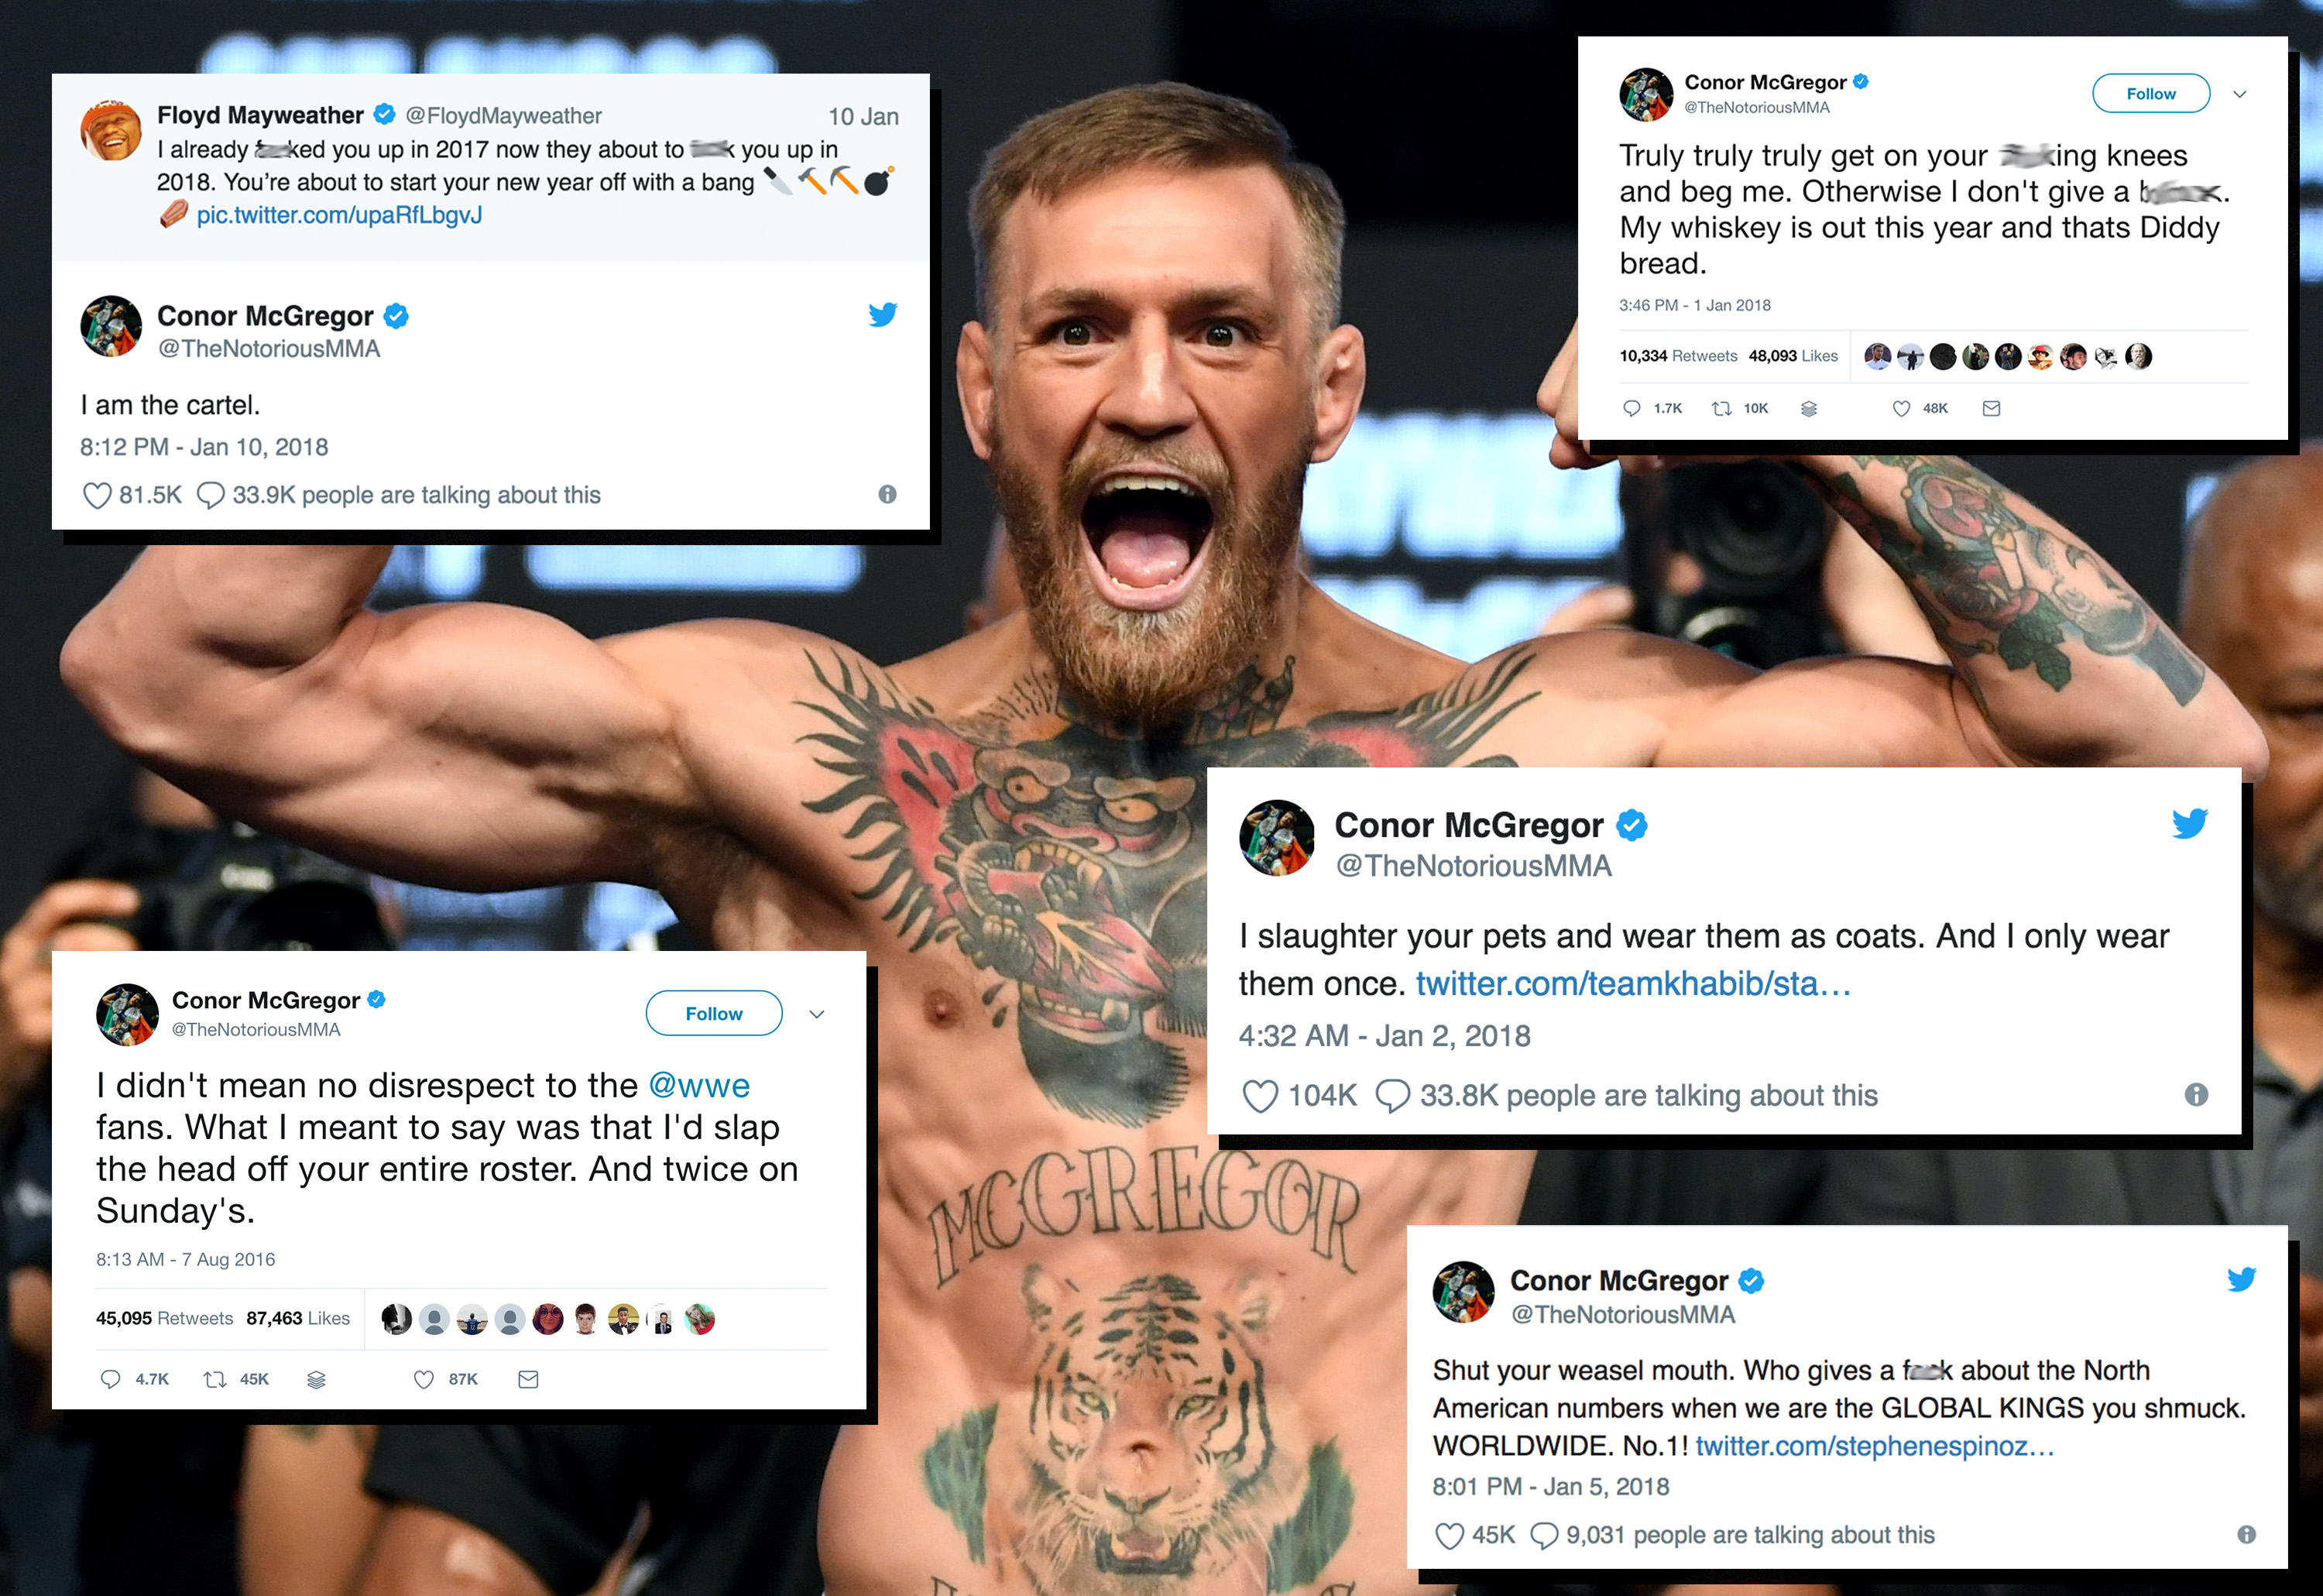 Diaz Forcefully Interjects During Latest McGregor - Mayweather Social Media Skirmish